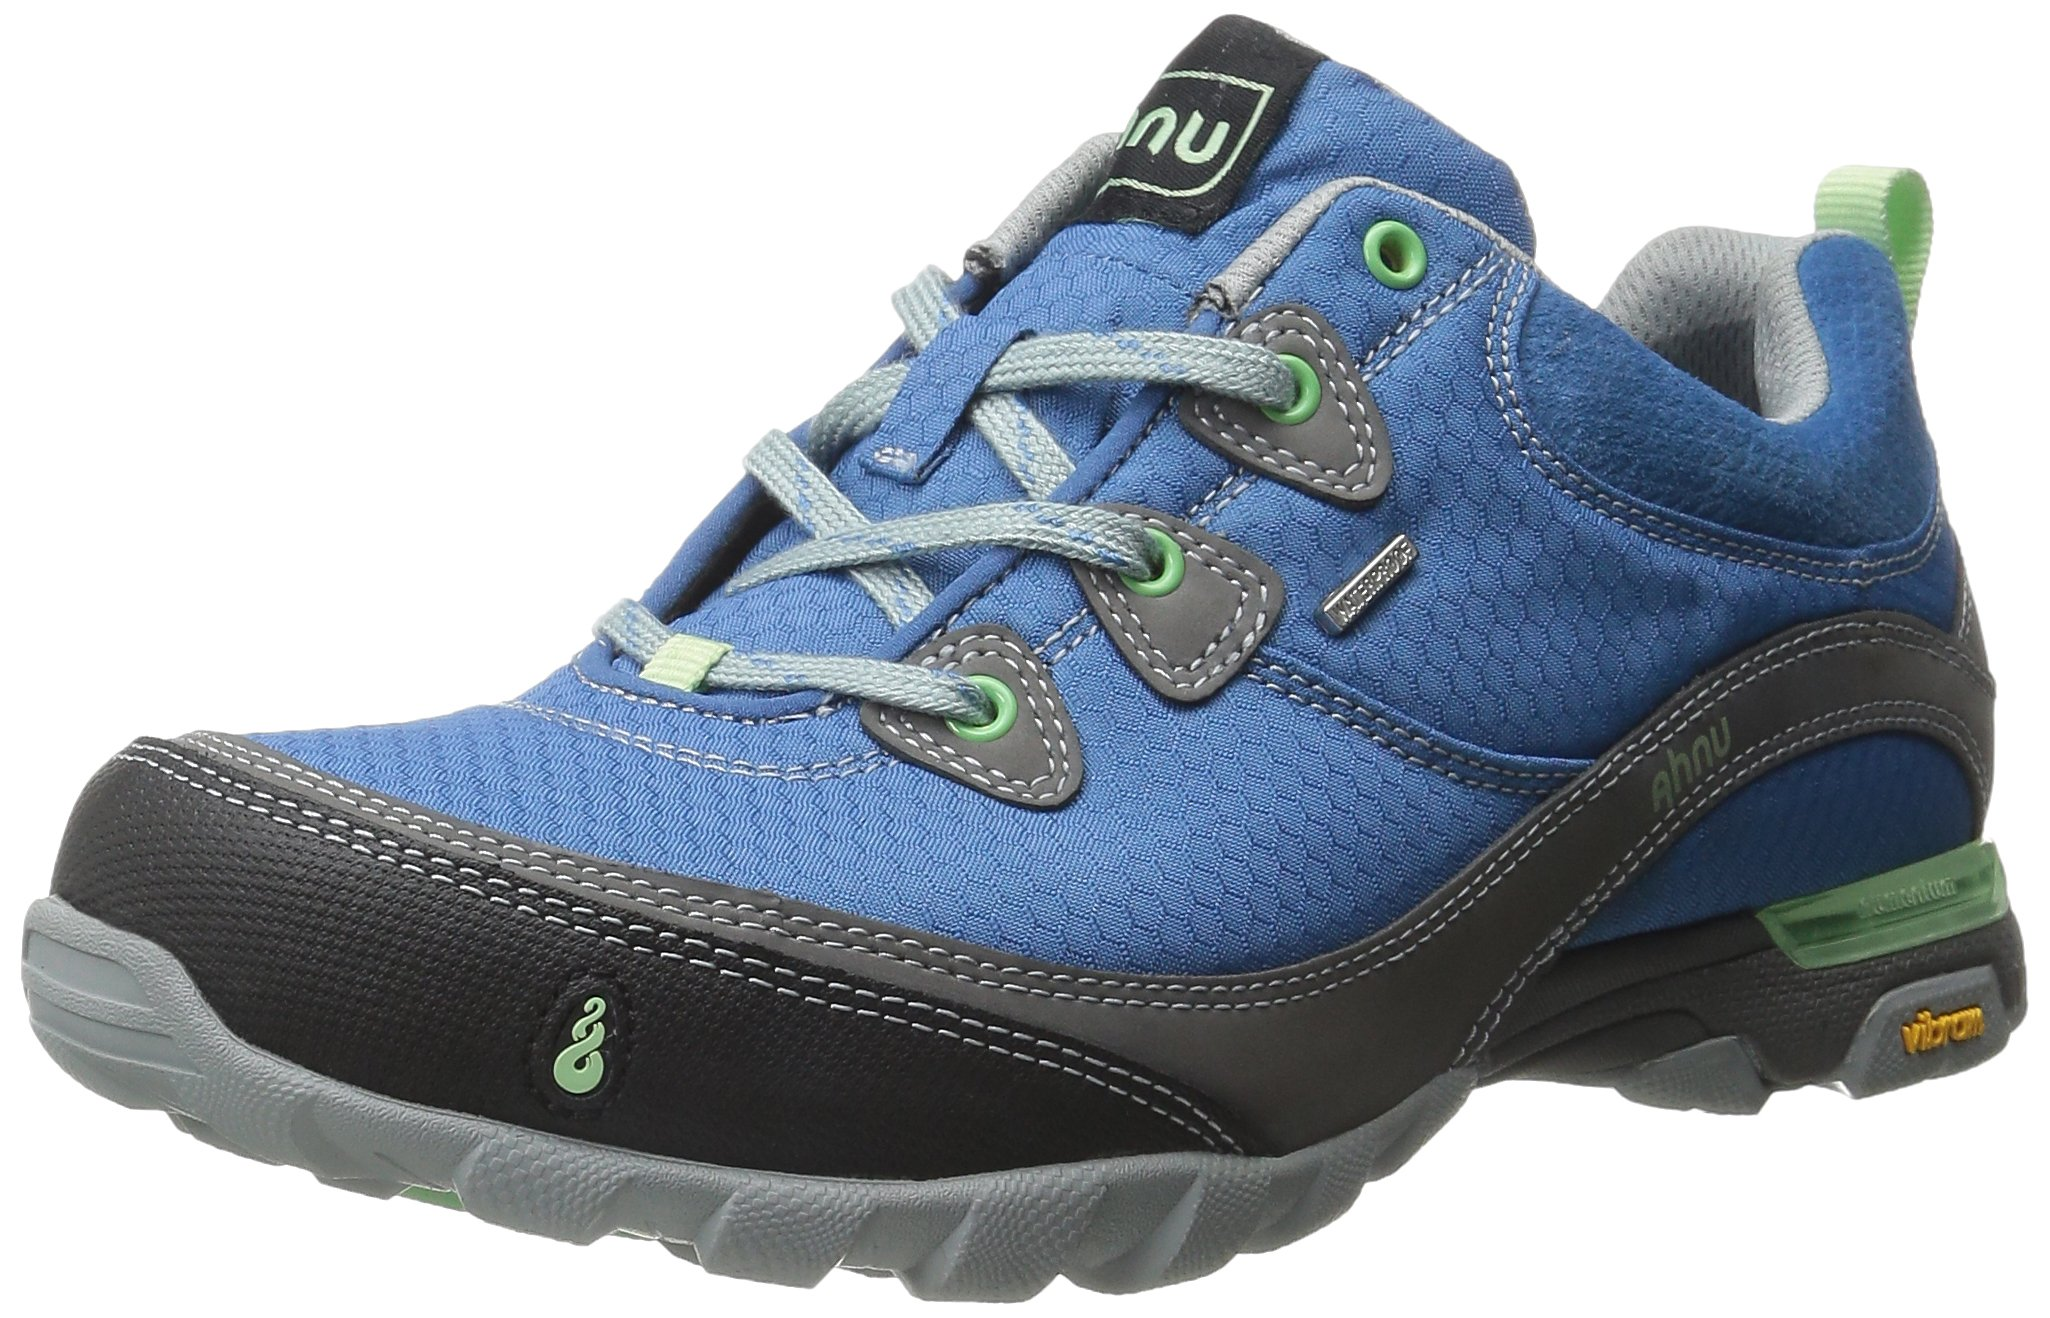 Ahnu Women's Sugarpine Waterproof Hiking Shoe, Bluestar, 10.5 M US by Ahnu